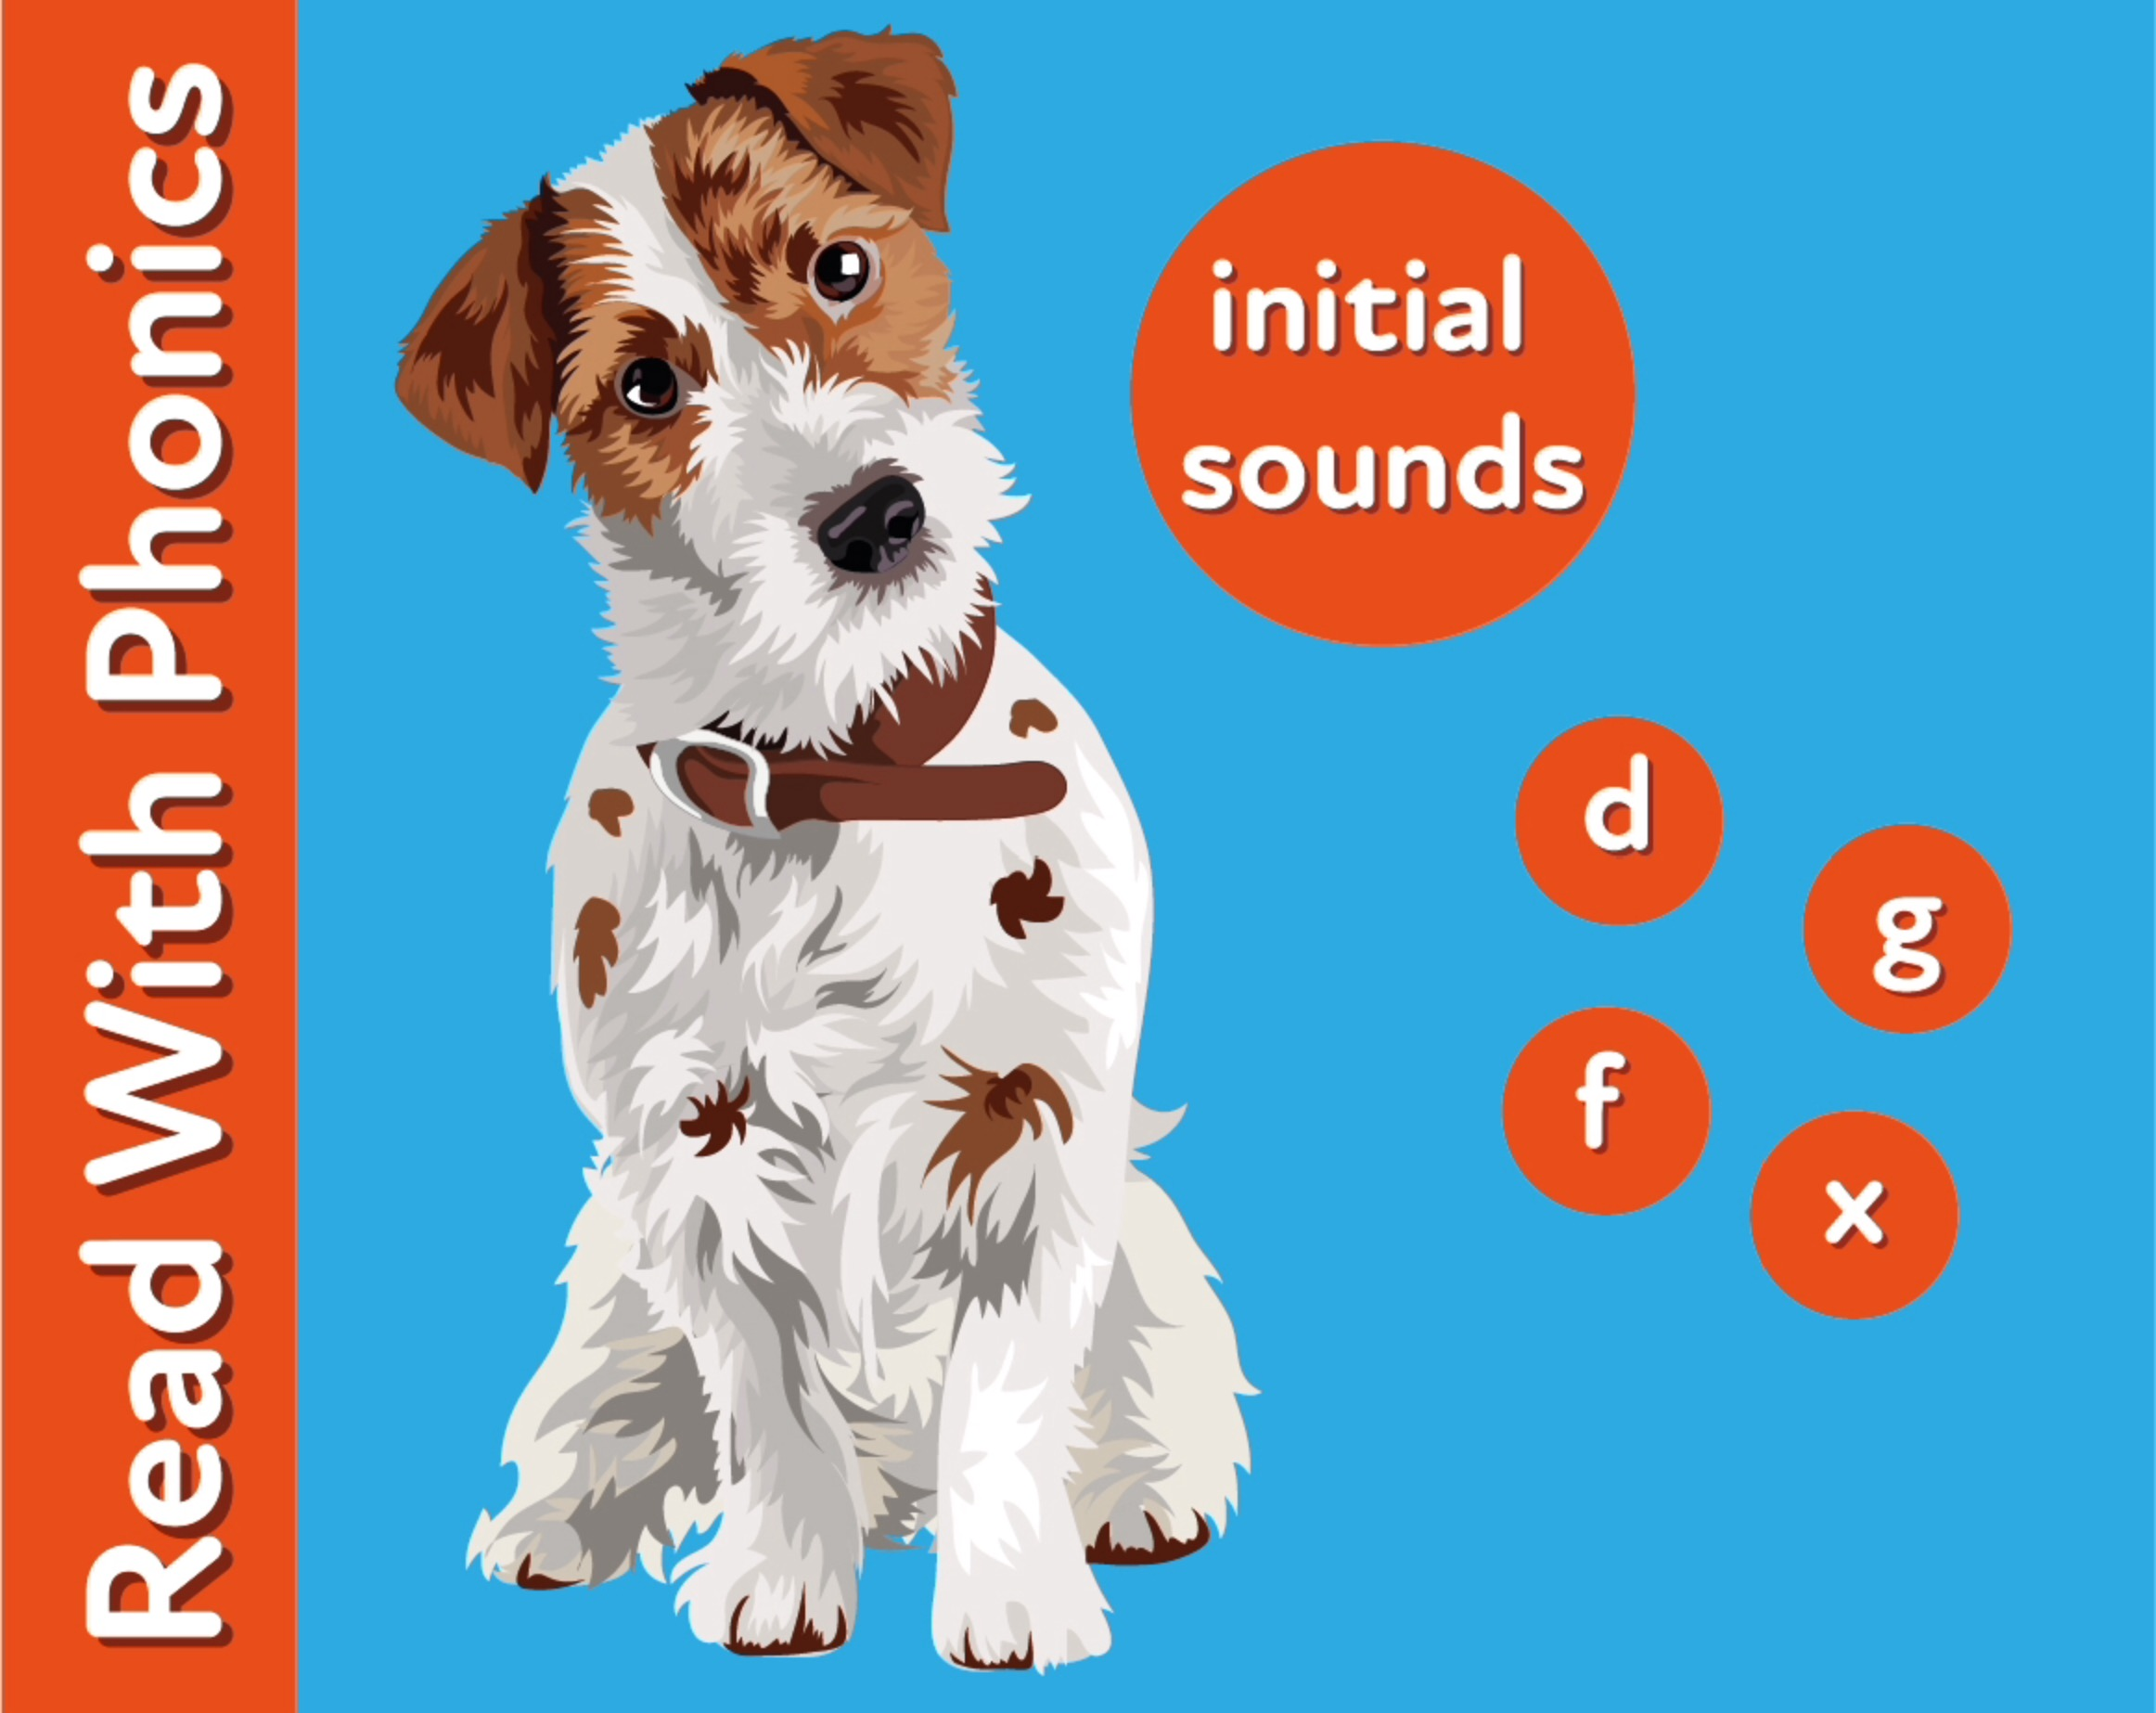 Learn The Initial Phonic Sounds  'd, g, f, x' (3 +)